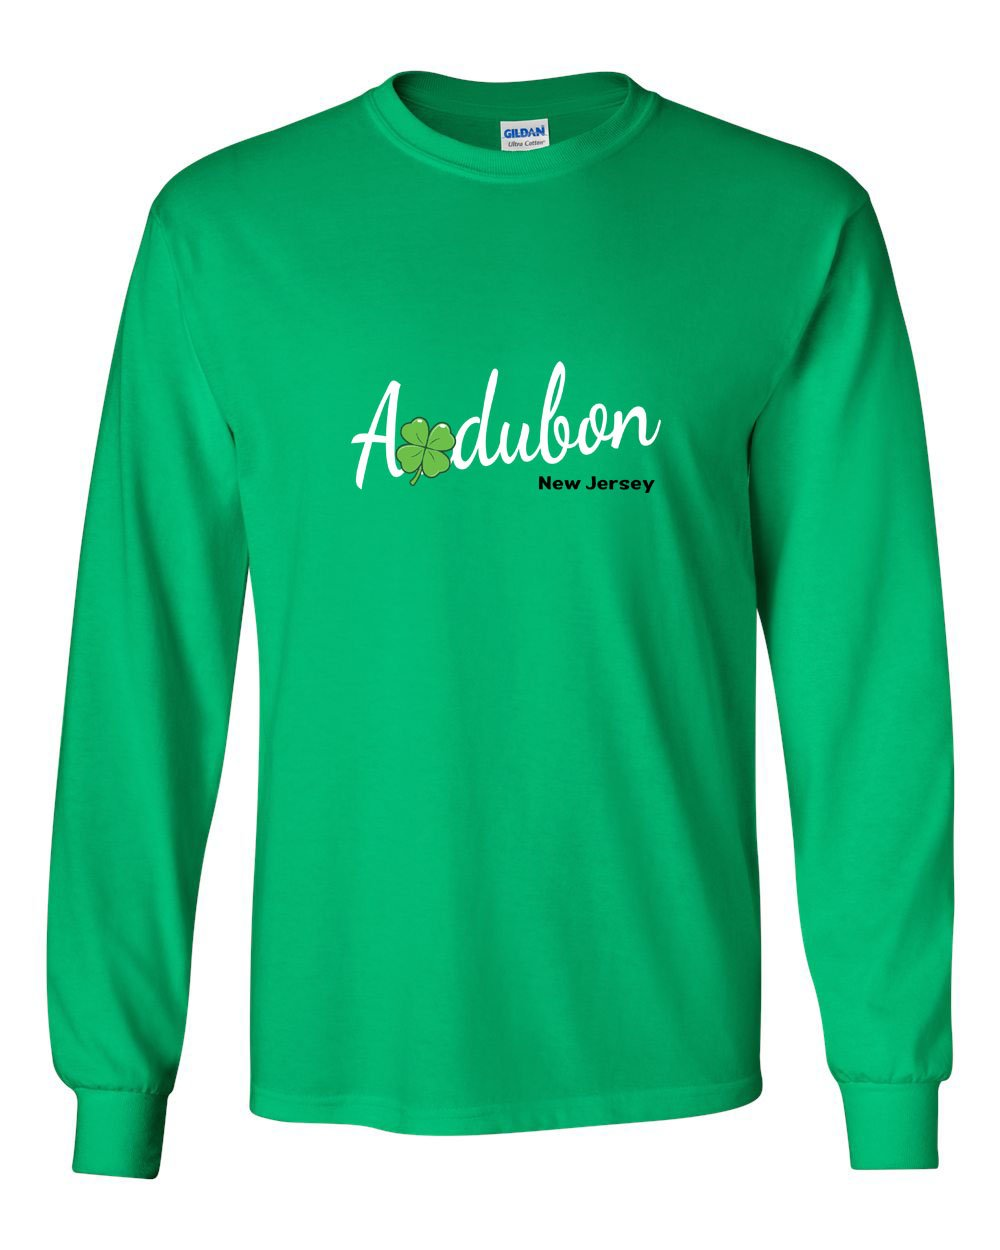 Irish Audubon MENS Long Sleeve Heavy Cotton T-Shirt